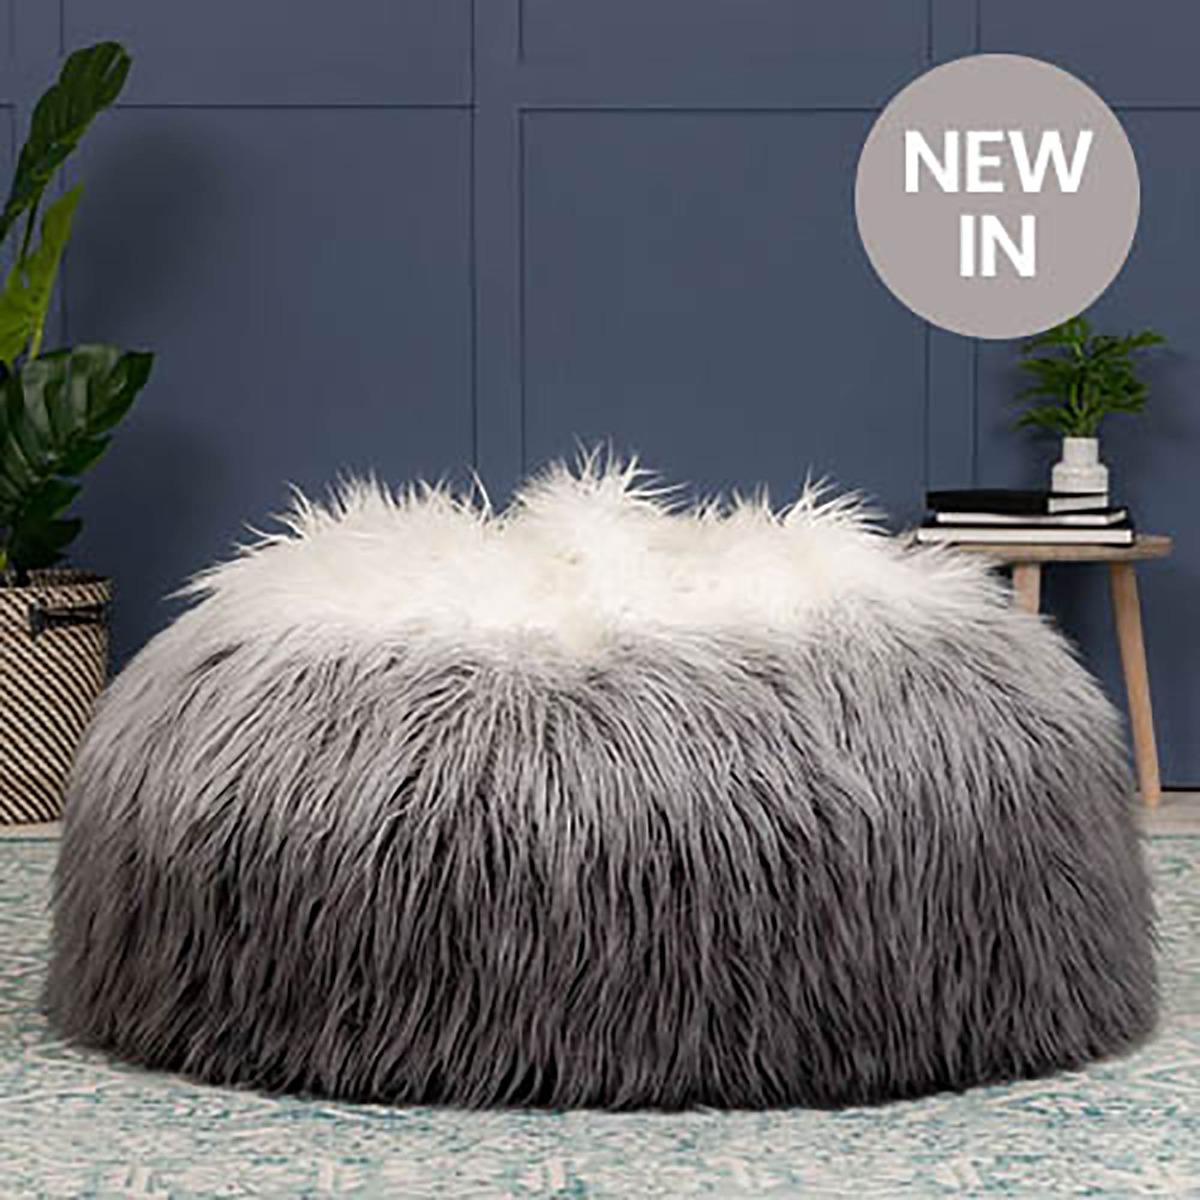 Ombre Faux Fur Bean Bag